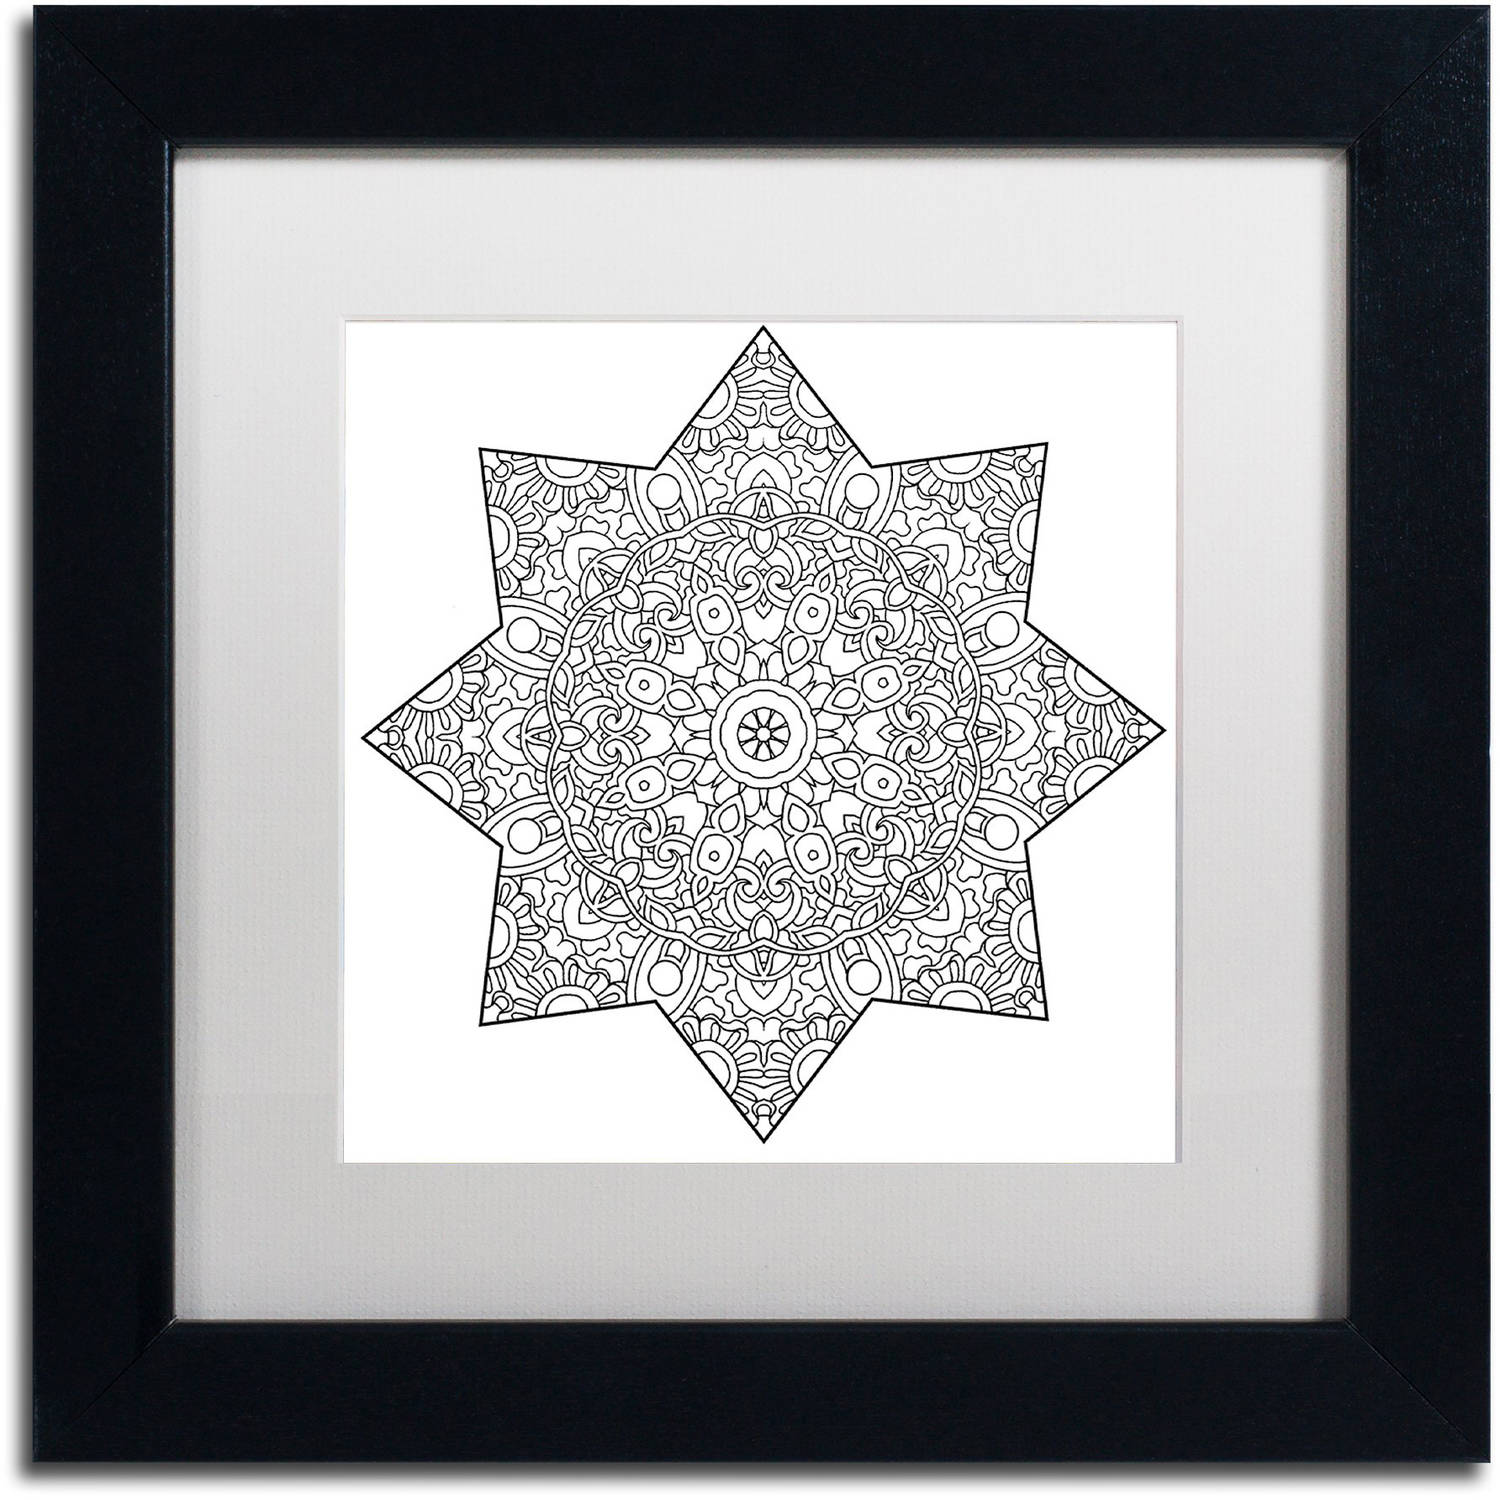 """Trademark Fine Art """"Mixed Coloring Book 1"""" Canvas Art by Kathy G. Ahrens, White Matte, Black Frame"""